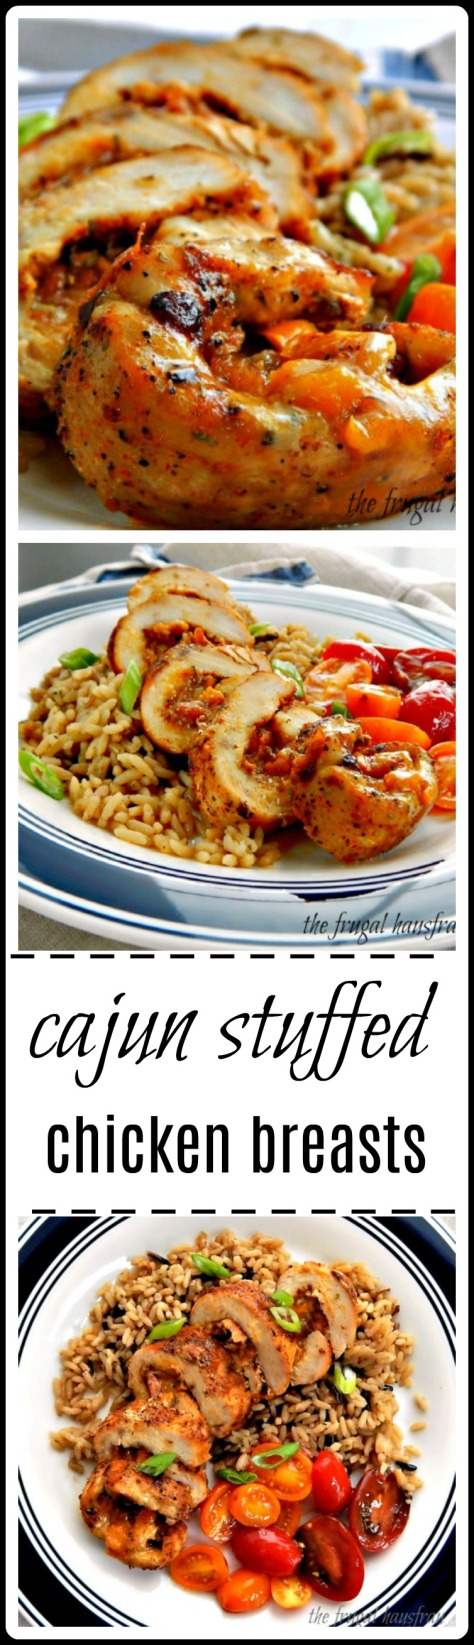 Cajun Stuffed Chicken Breast - stuffed with the classic New Orleans' Trinity and Cheese! Ya gotta have cheese!!